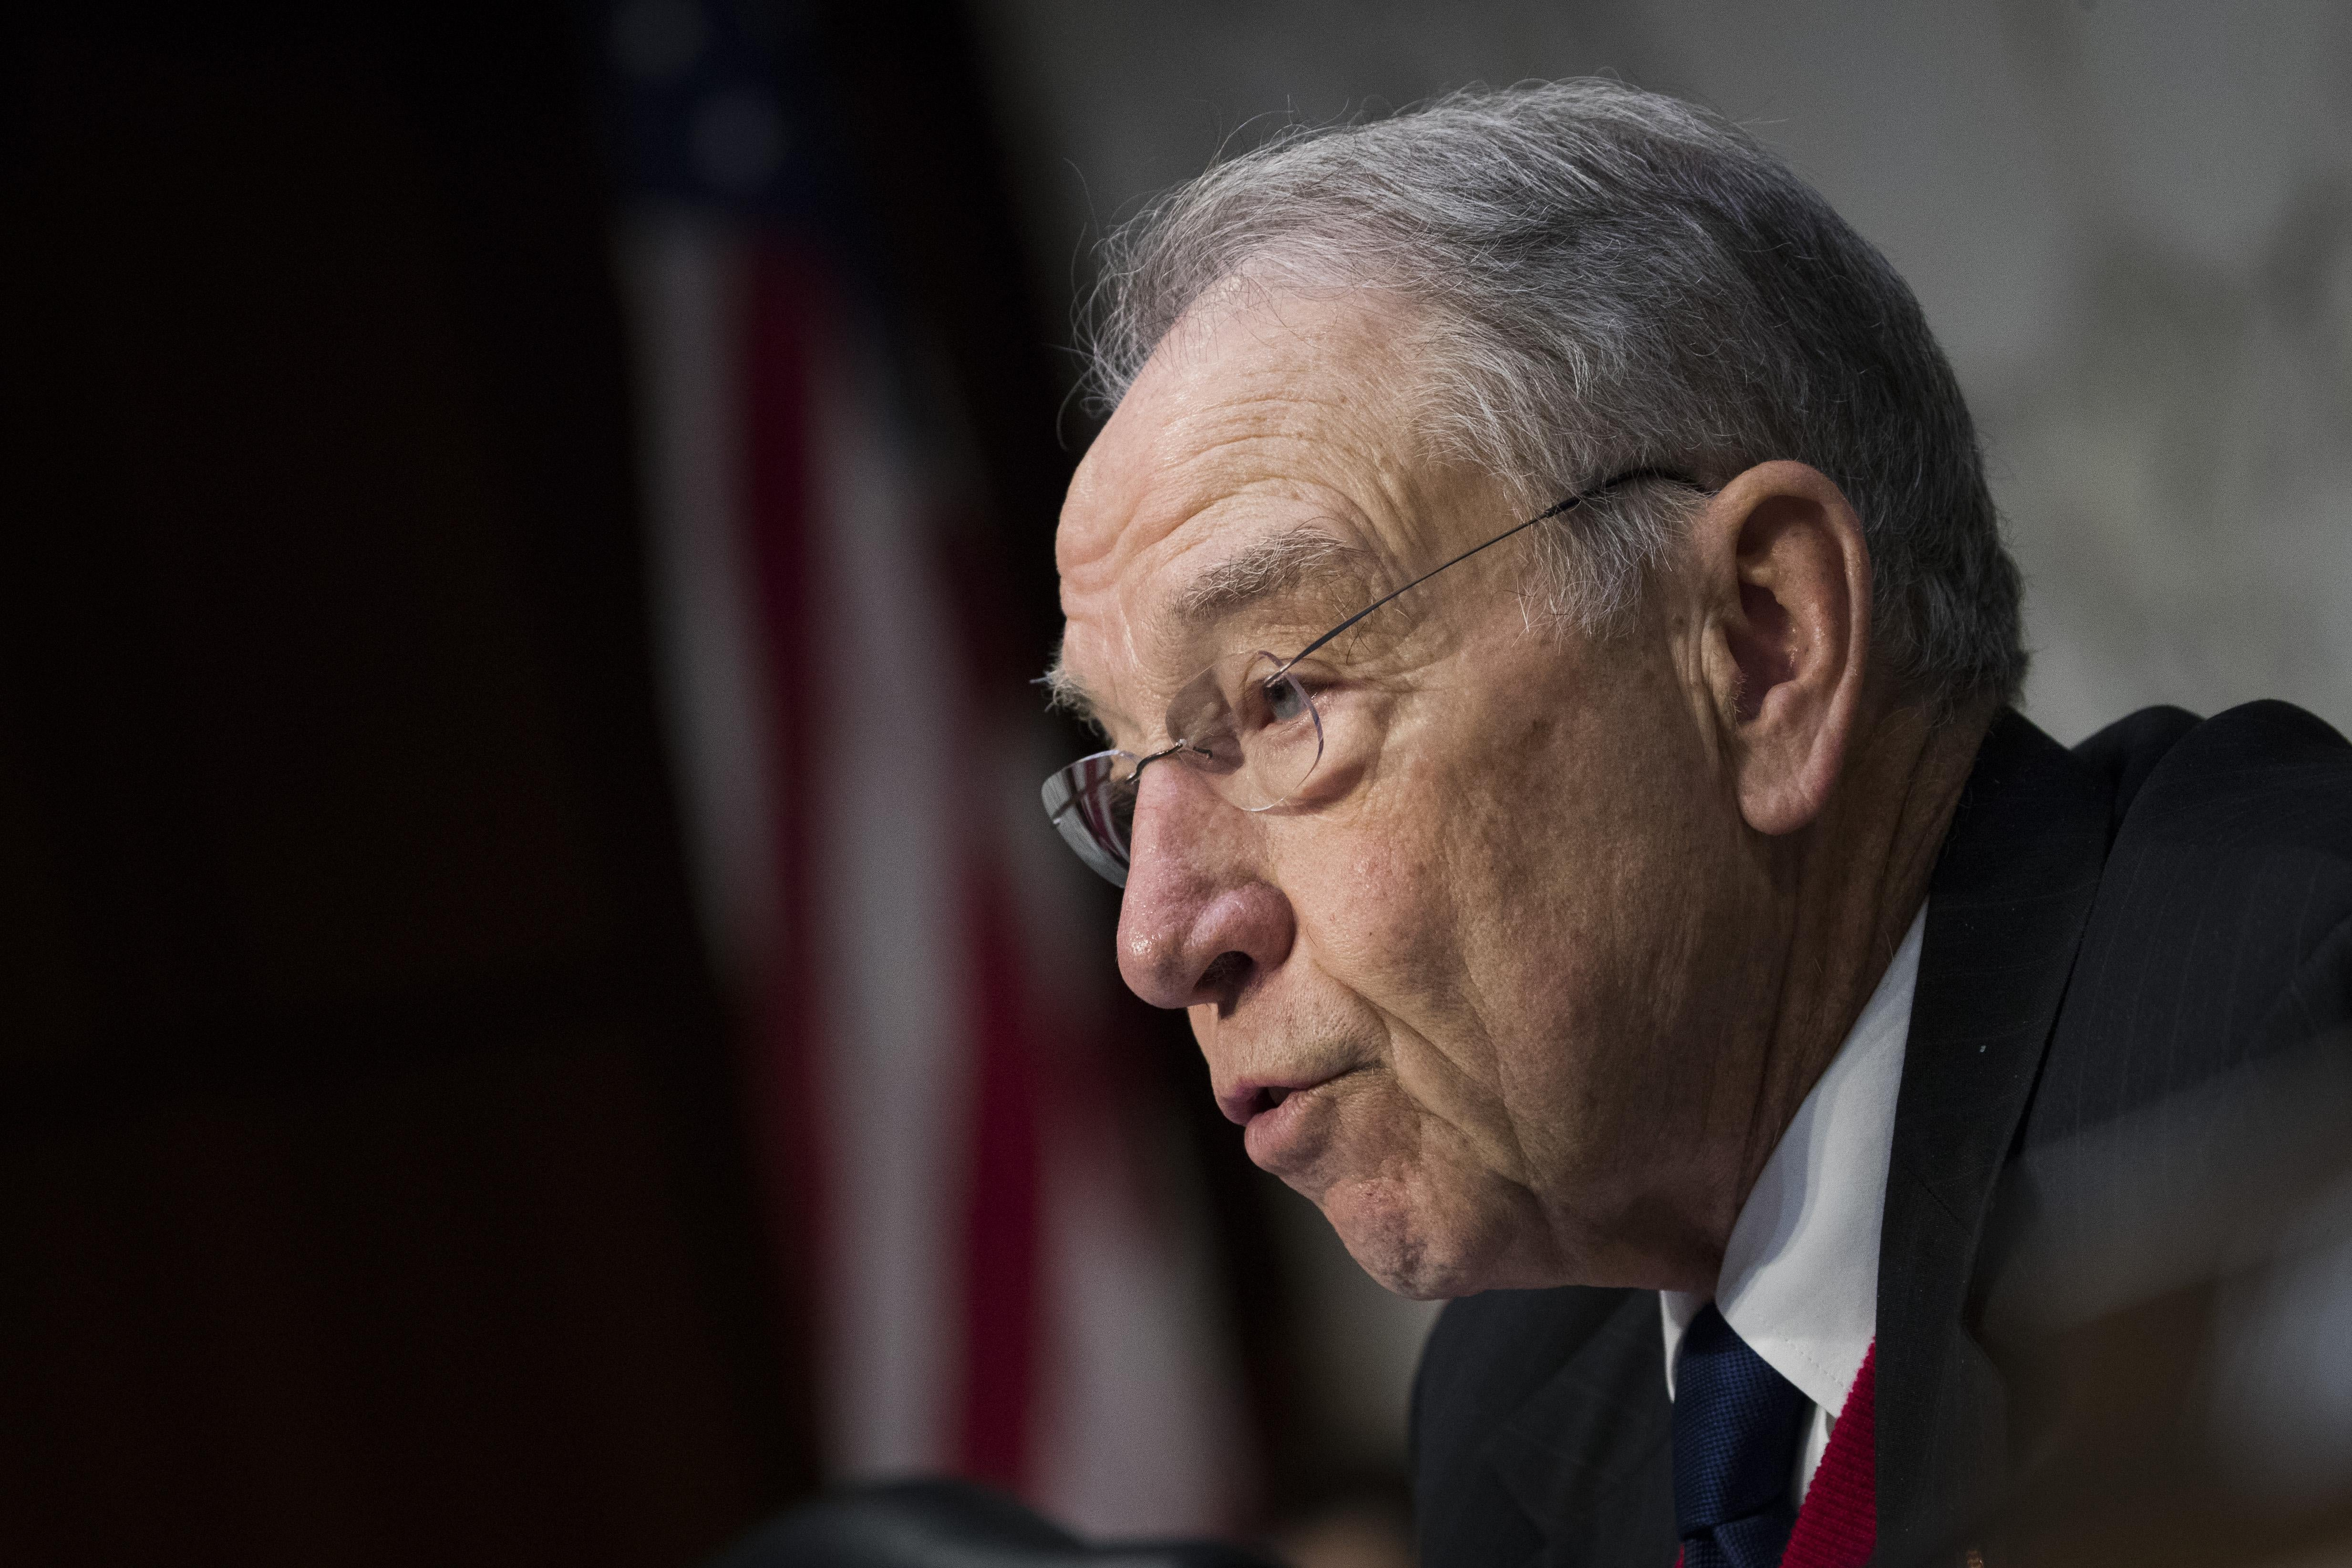 Chairman Sen. Chuck Grassley questions witnesses during a Senate Judiciary Committee hearing on Capitol Hill on Dec. 6 in Washington.